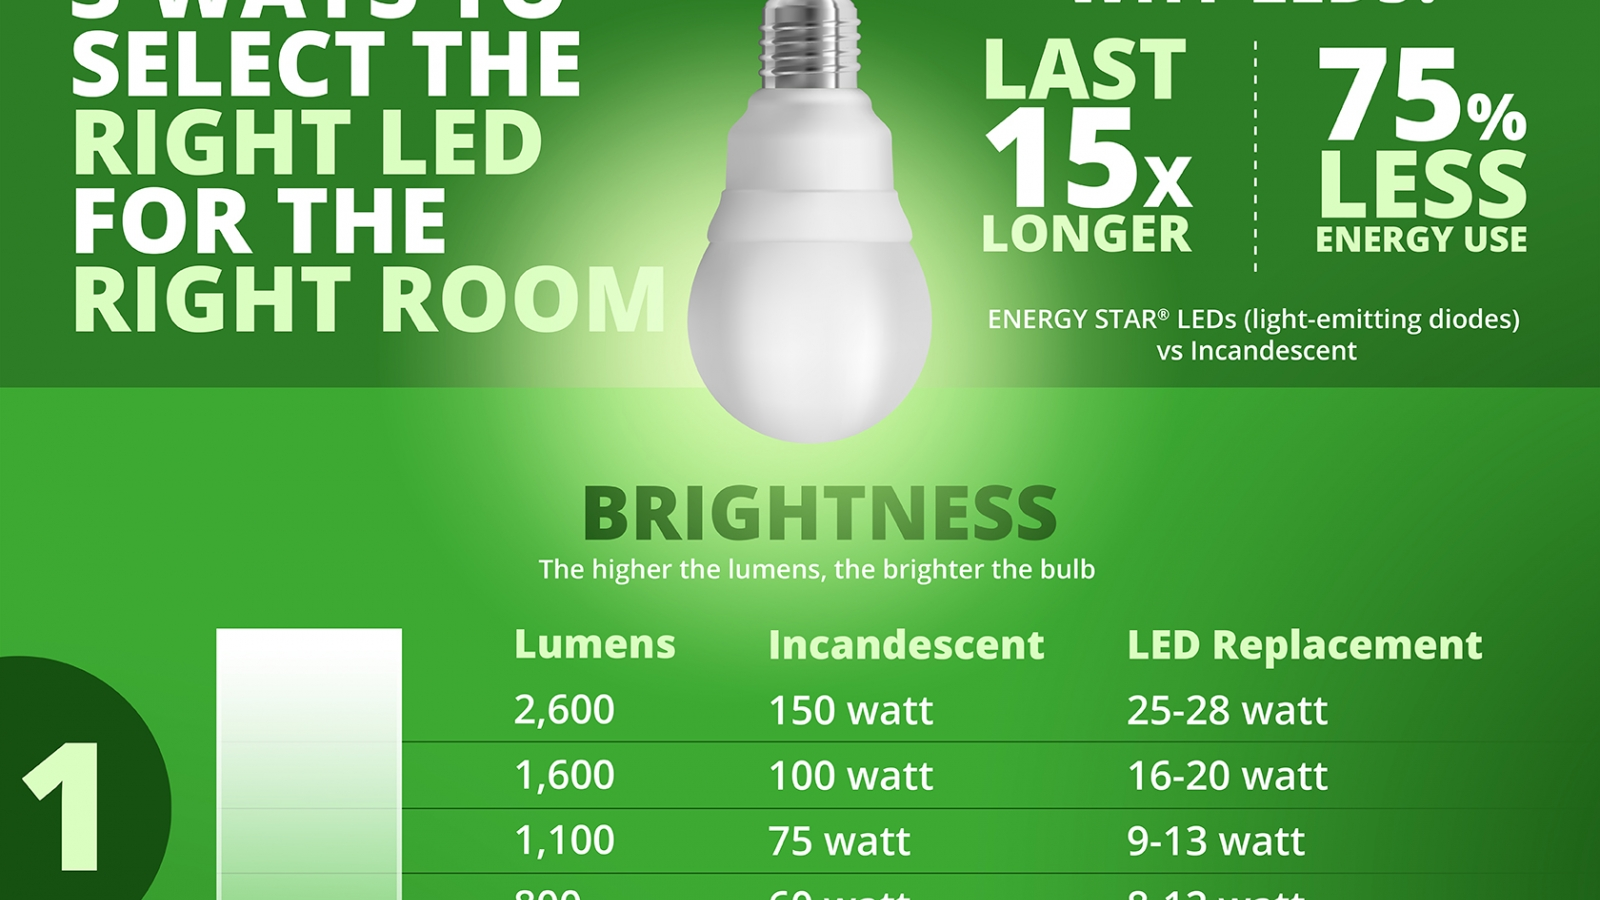 3 ways to select the right LED for the right room infographic